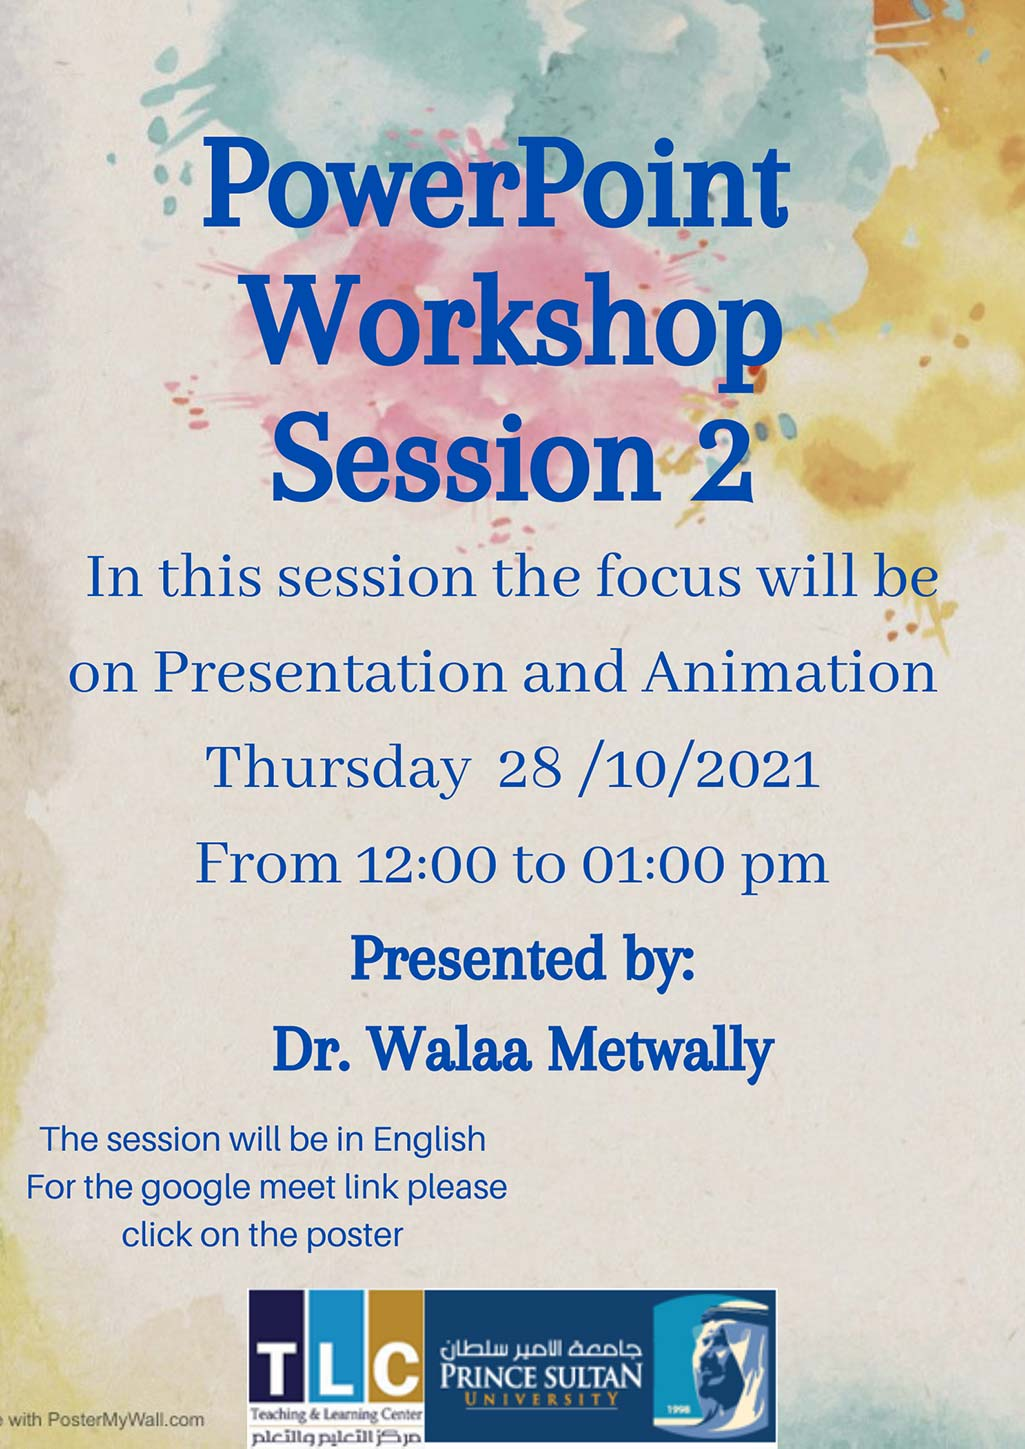 PowerPoint Workshop Session 2